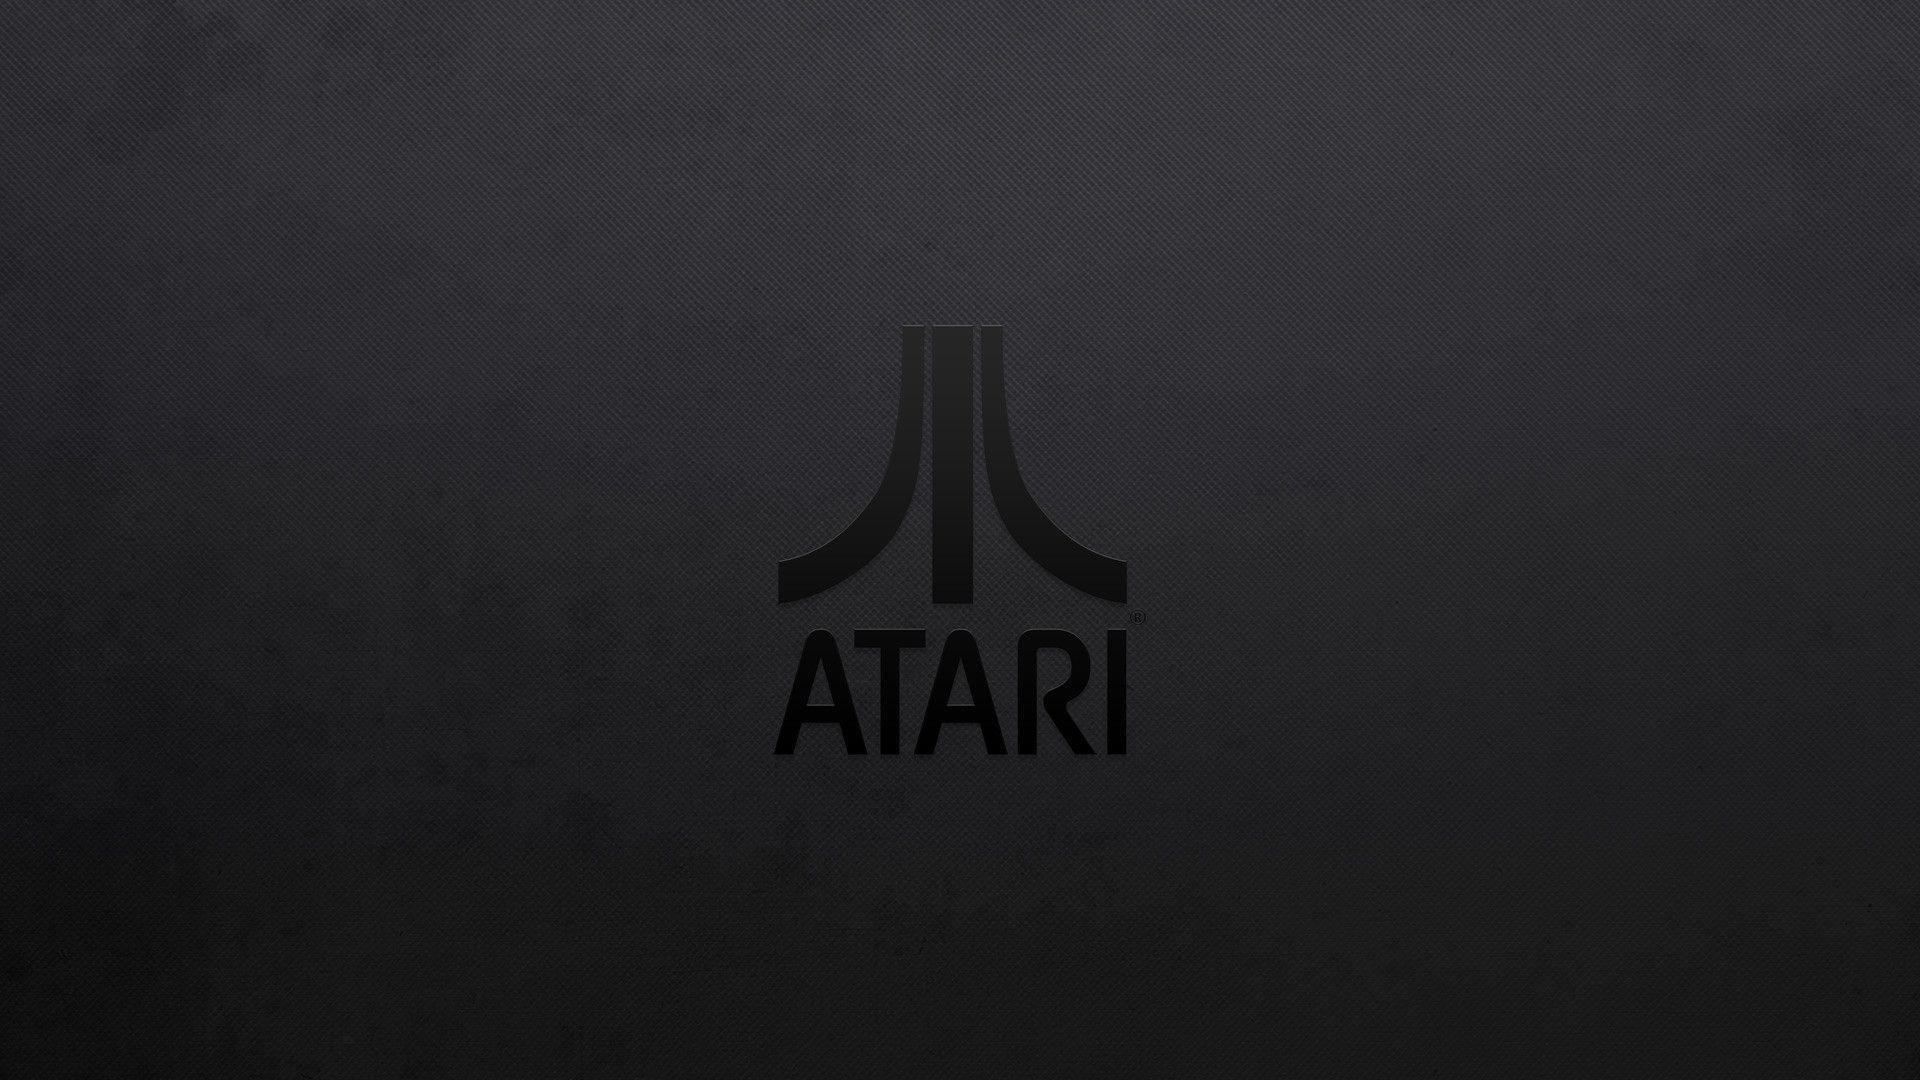 Products atari Wallpaper 1920x1080 | Hot HD Wallpaper